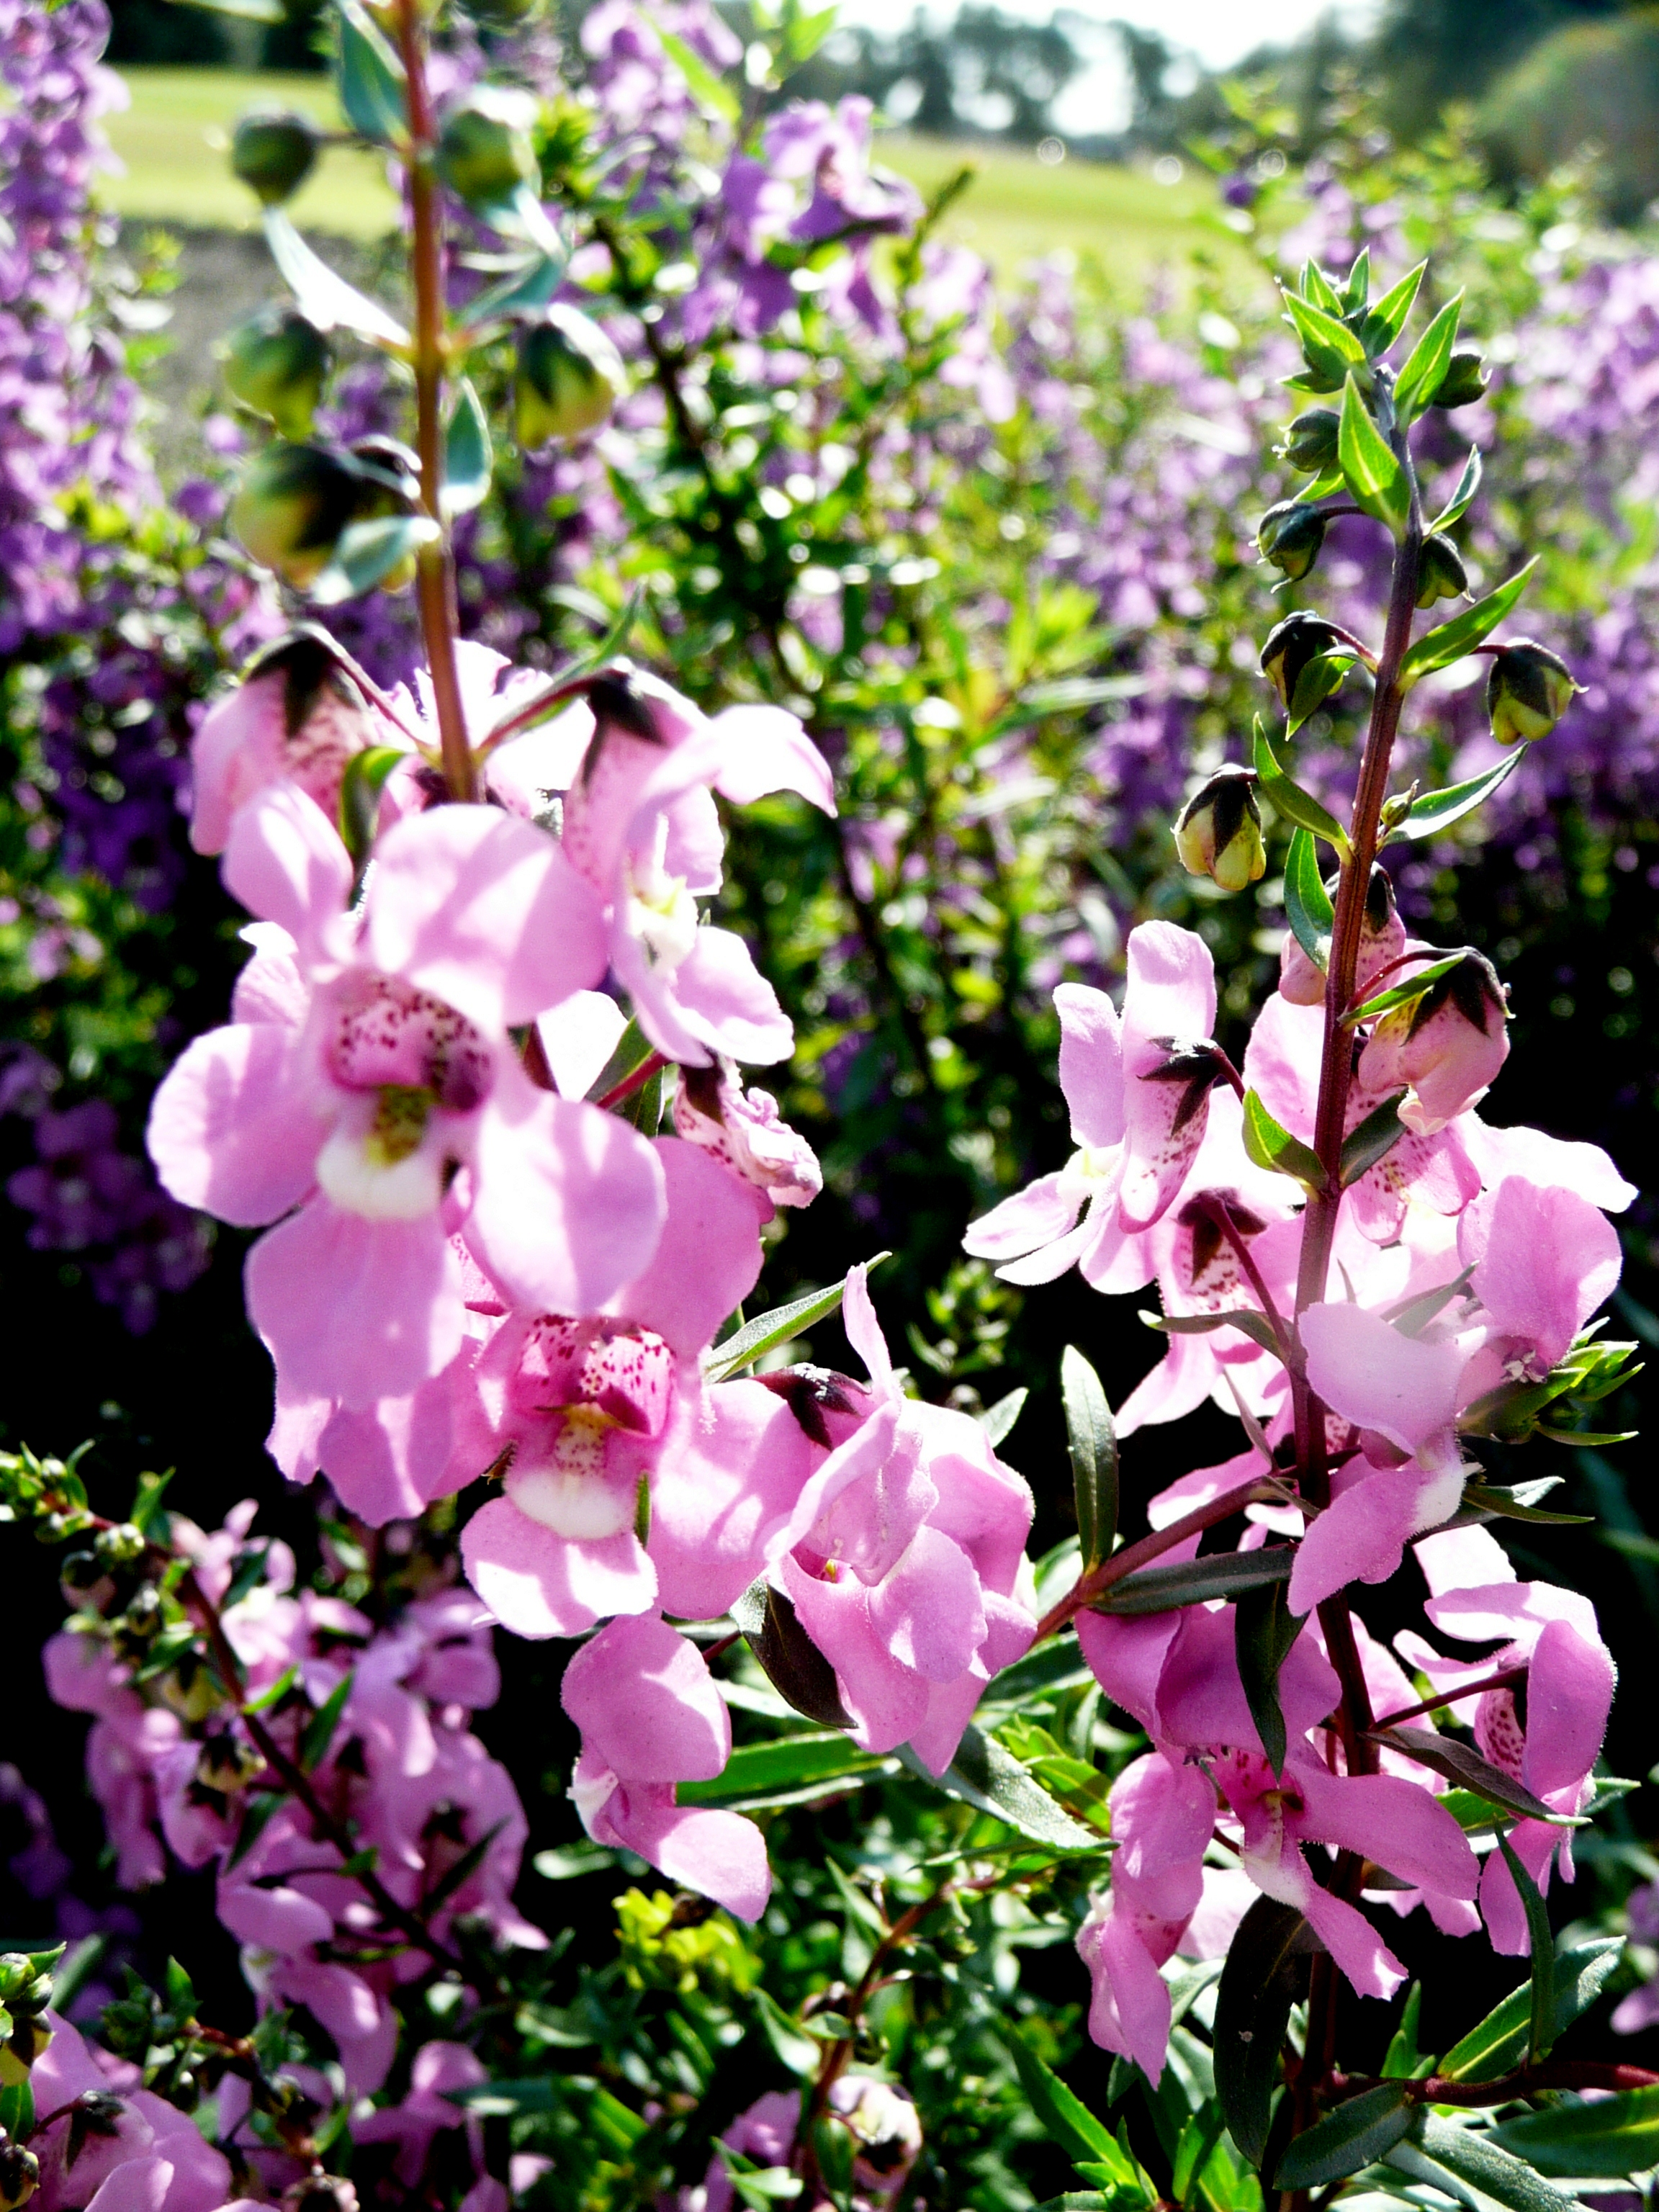 Angelonia – plant of the week, July 8, 2013